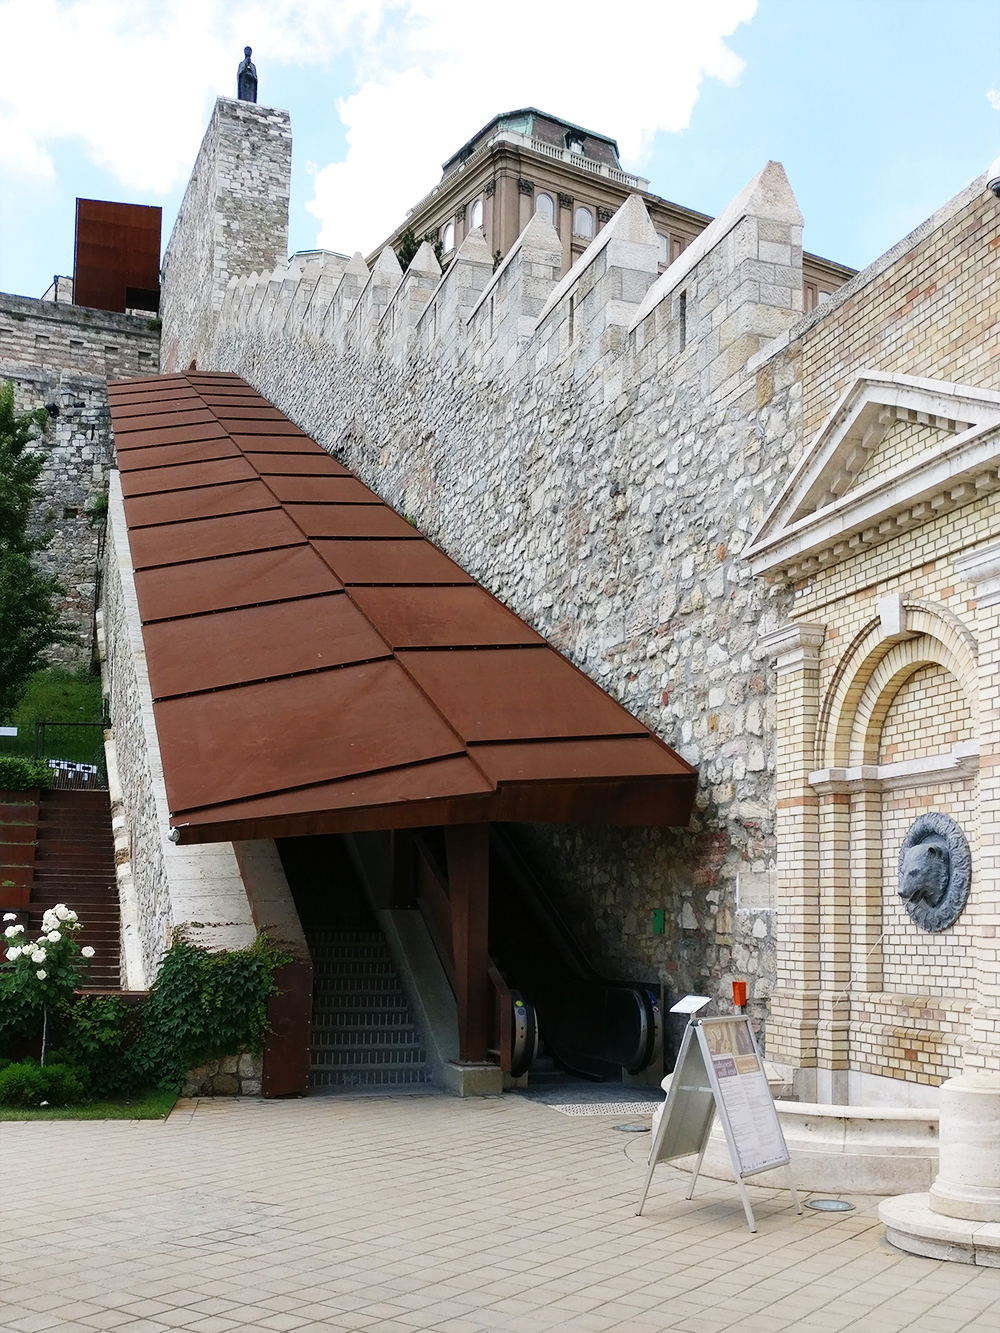 Escalator and stairs in Castle Garden Bazaar to Buda Castle - Top 5 viewpoints in Budapest Hungary, recommended by a local | Aliz's Wonderland